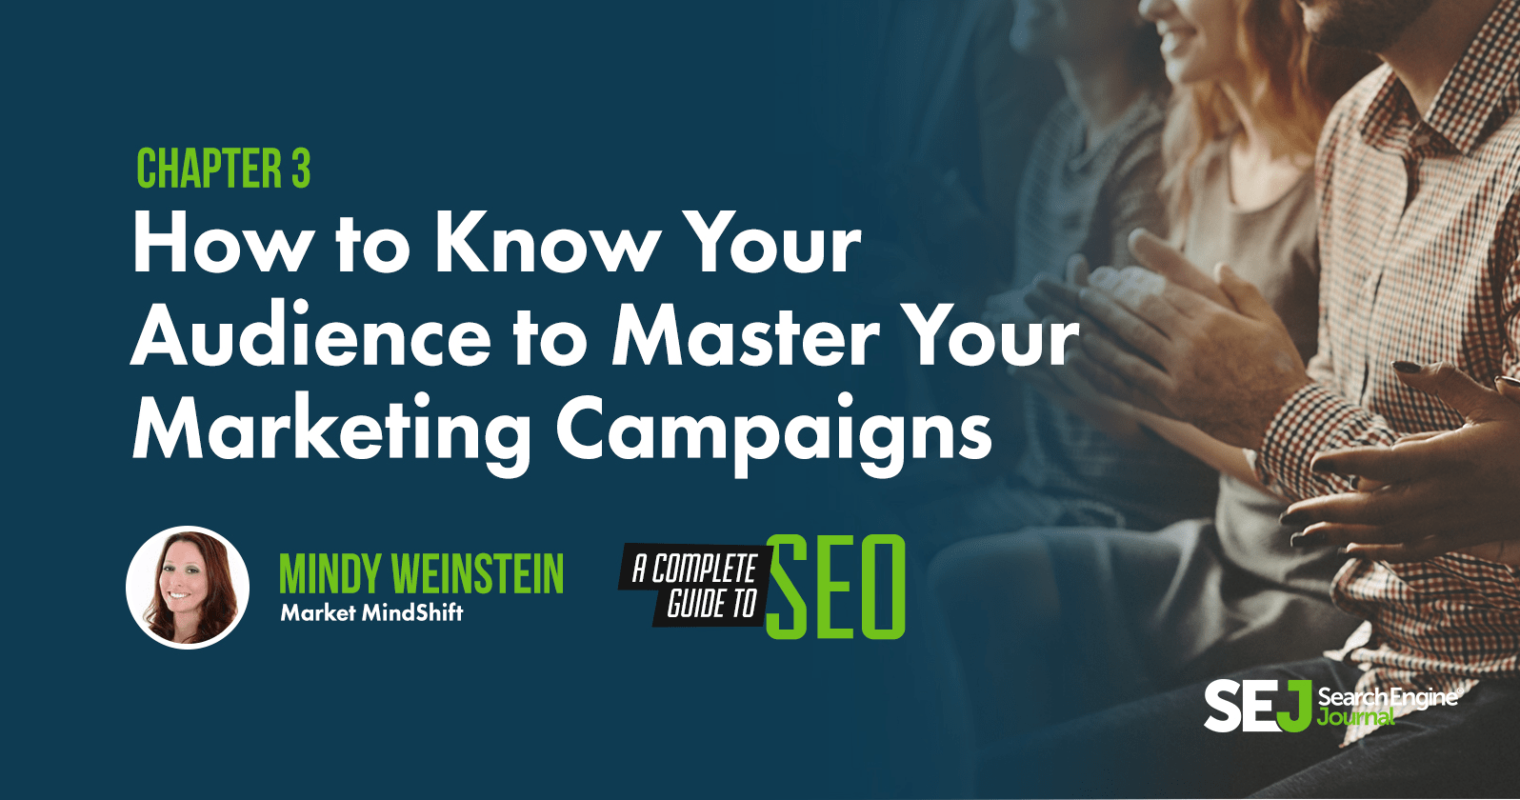 How to Identify and Create Marketing Materials for your true Audience